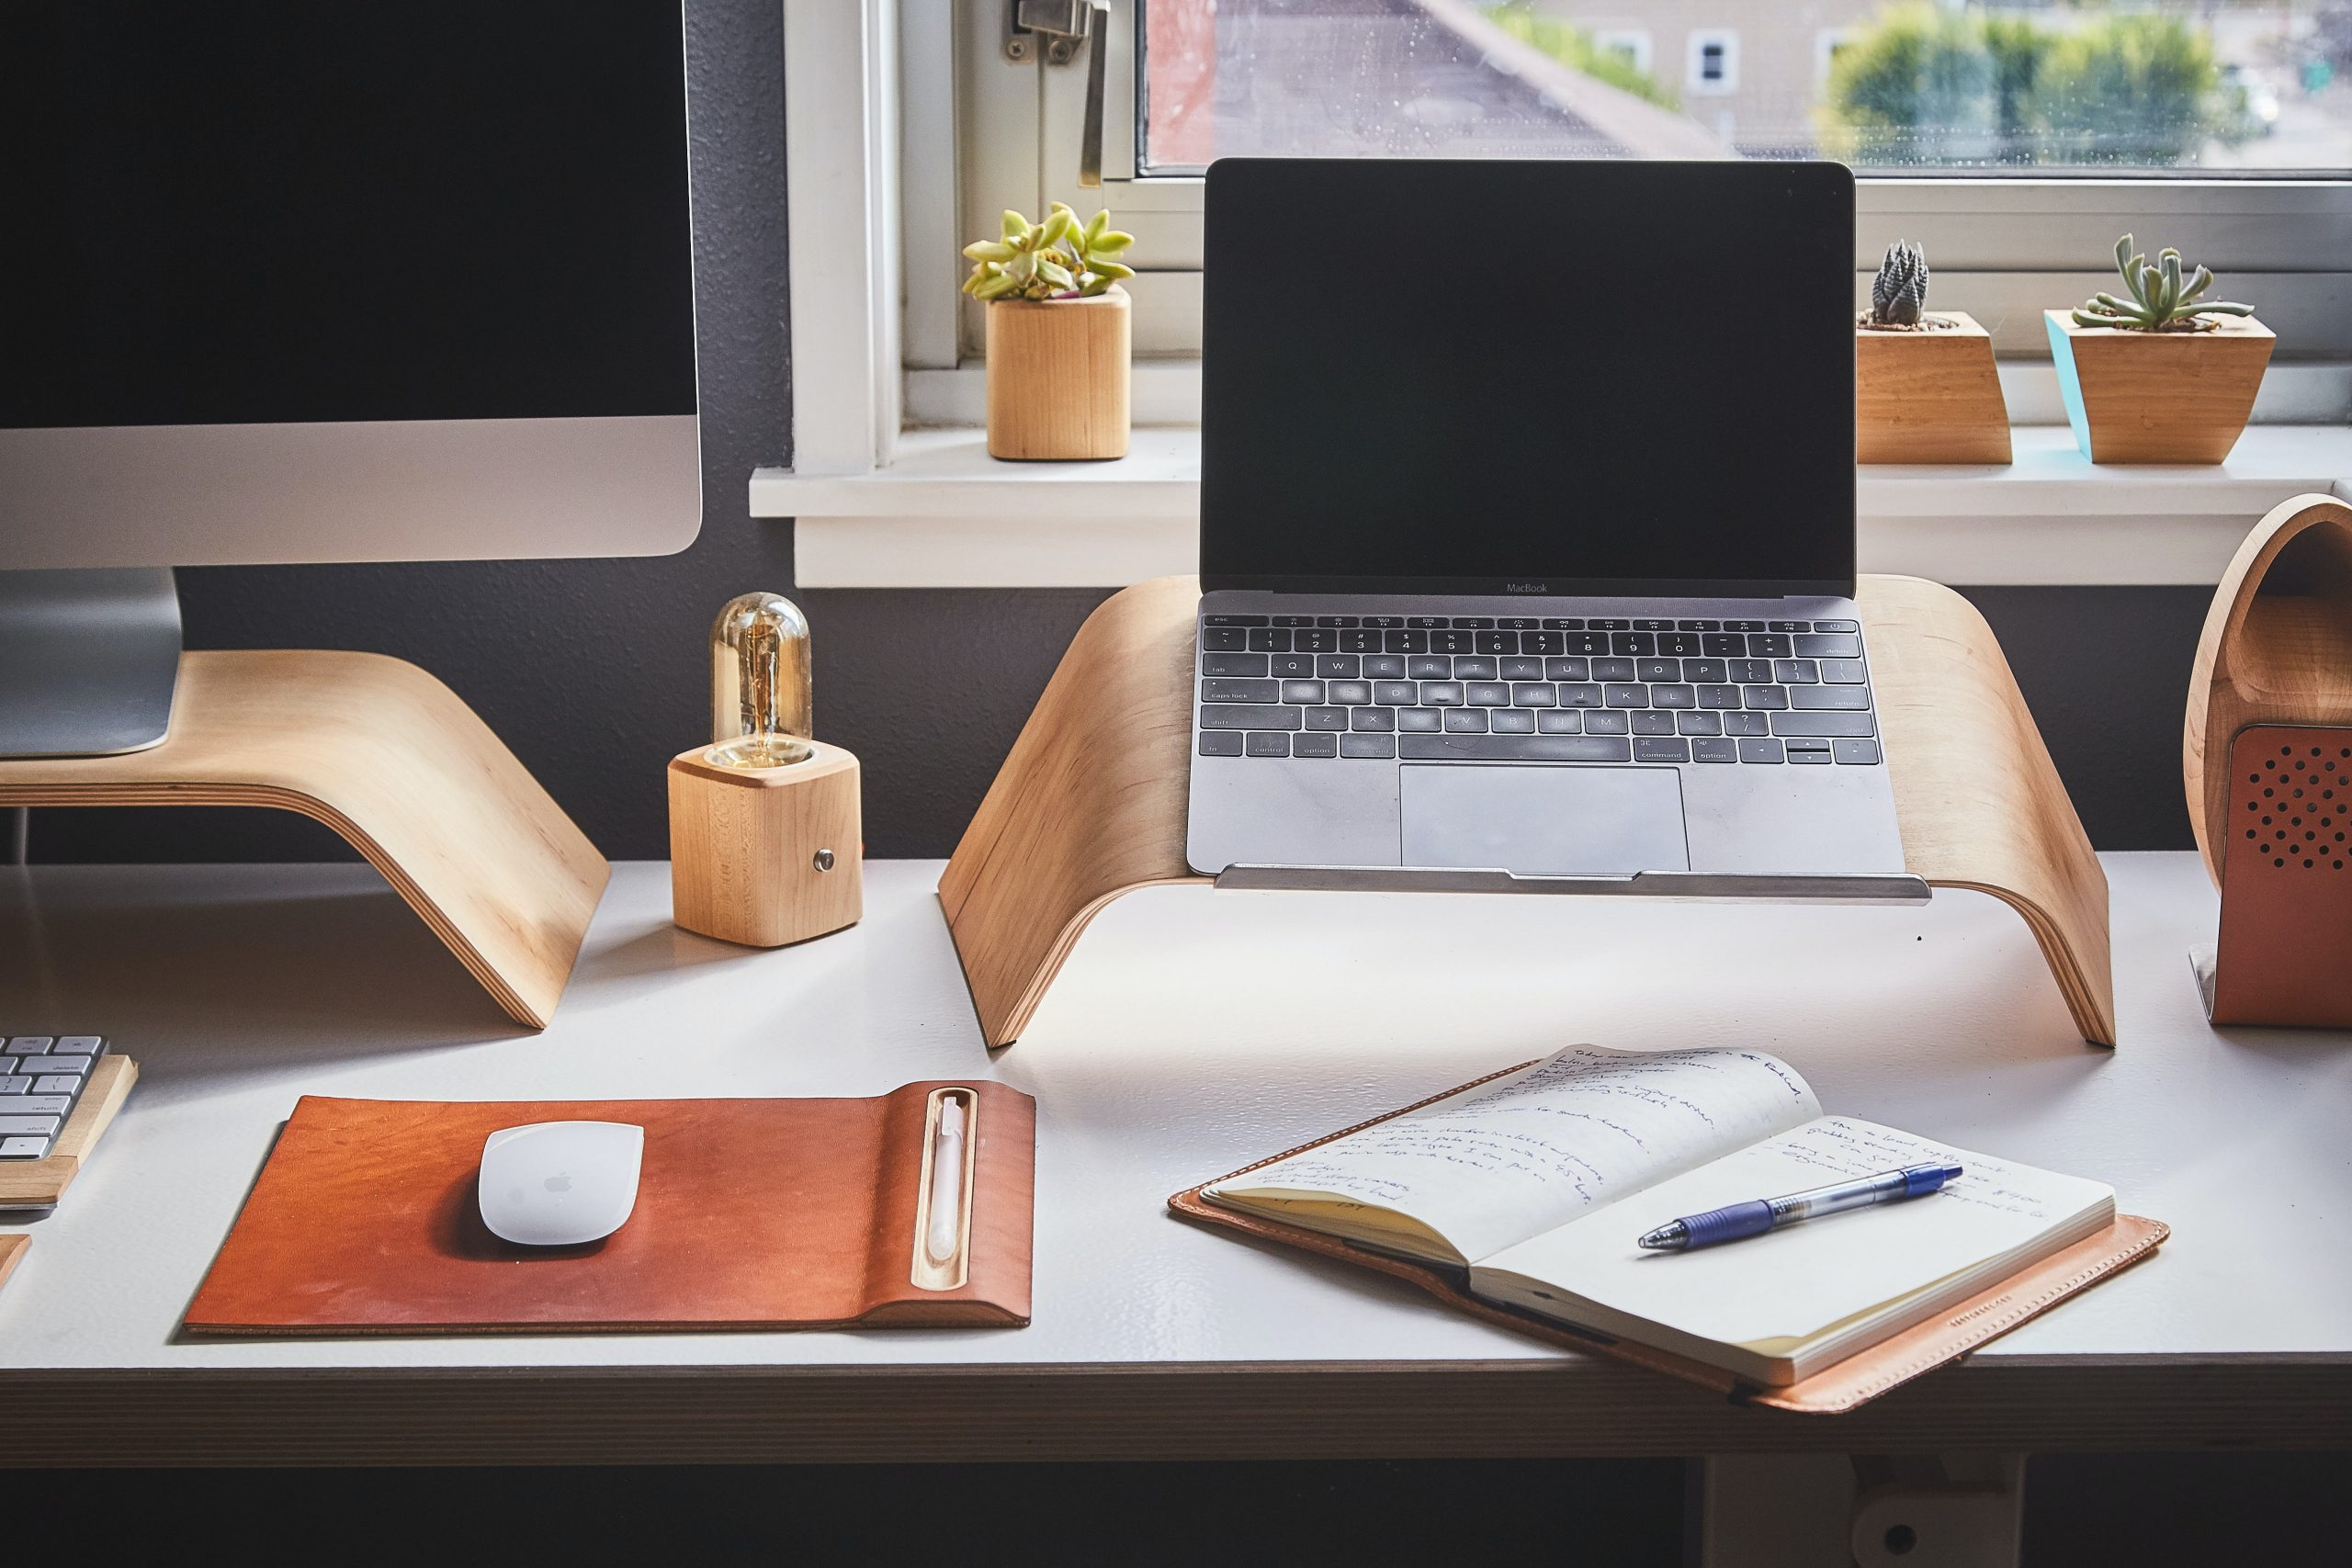 Have a Well-equipped an Organized Workspace